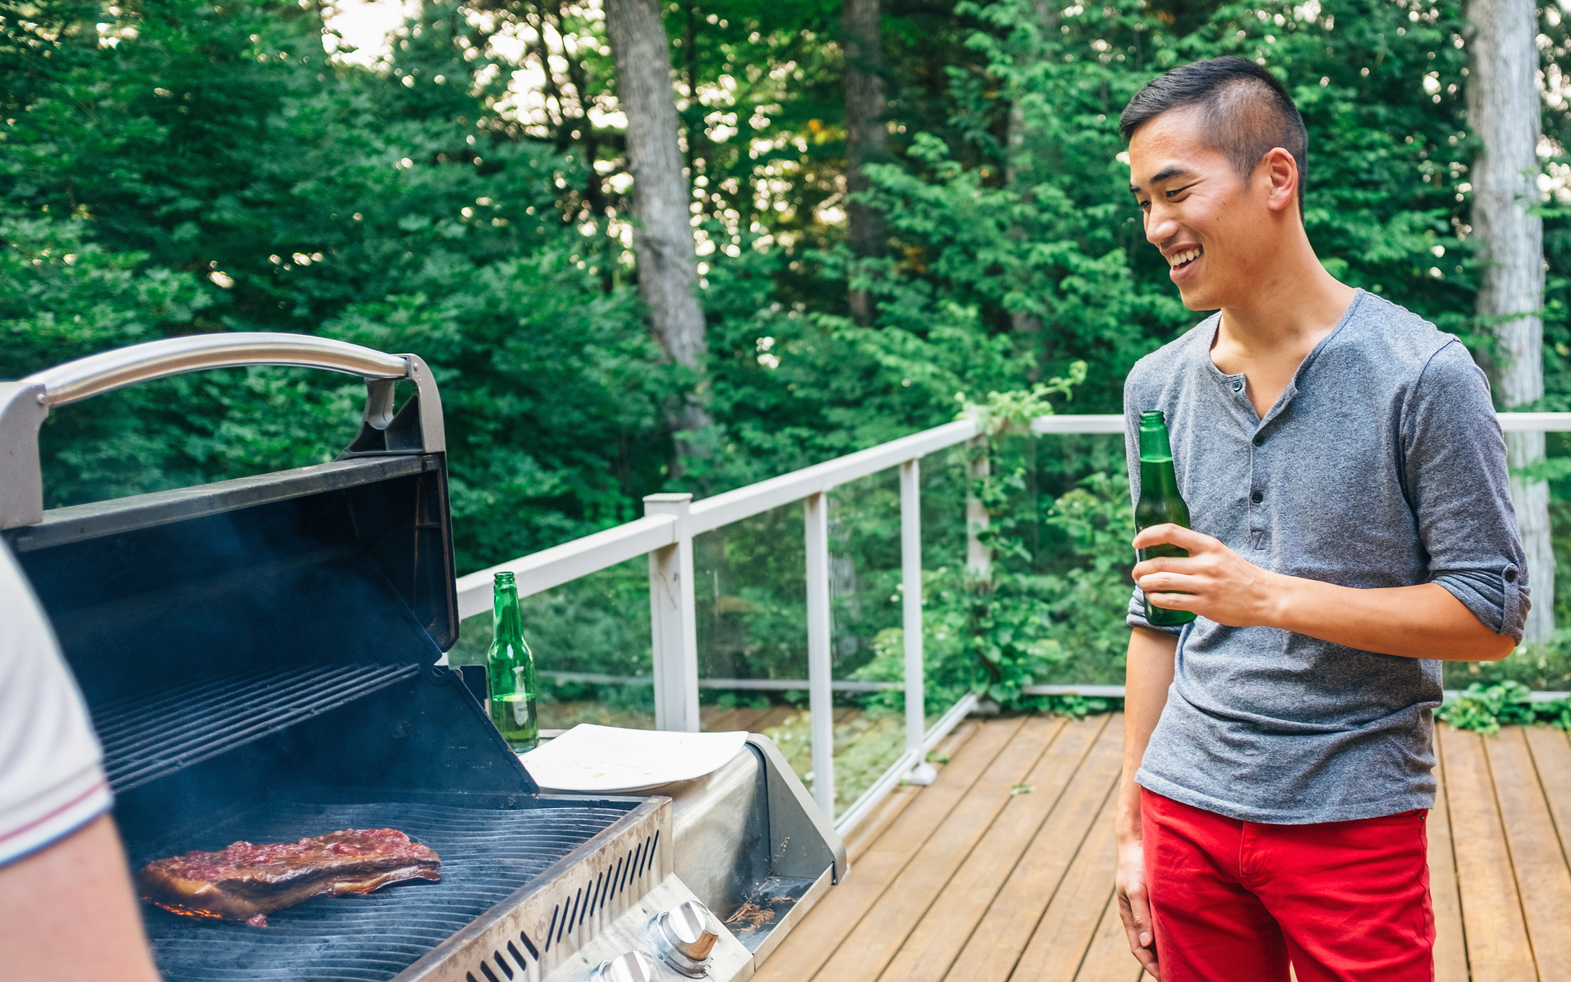 Grilling pork belly outdoors in summer